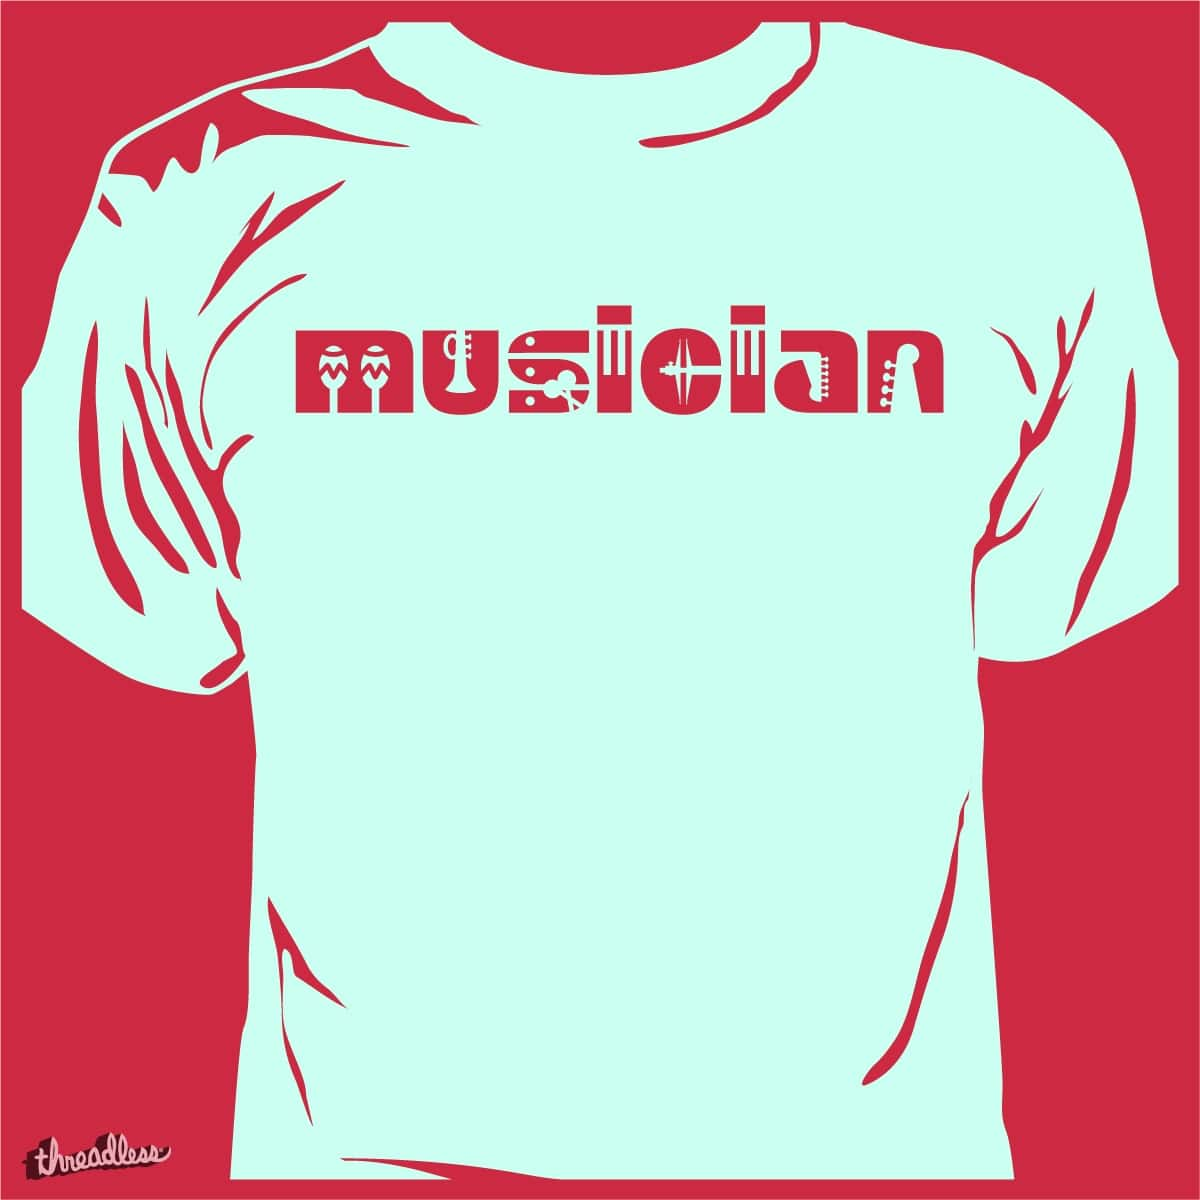 musician by frk81 on Threadless